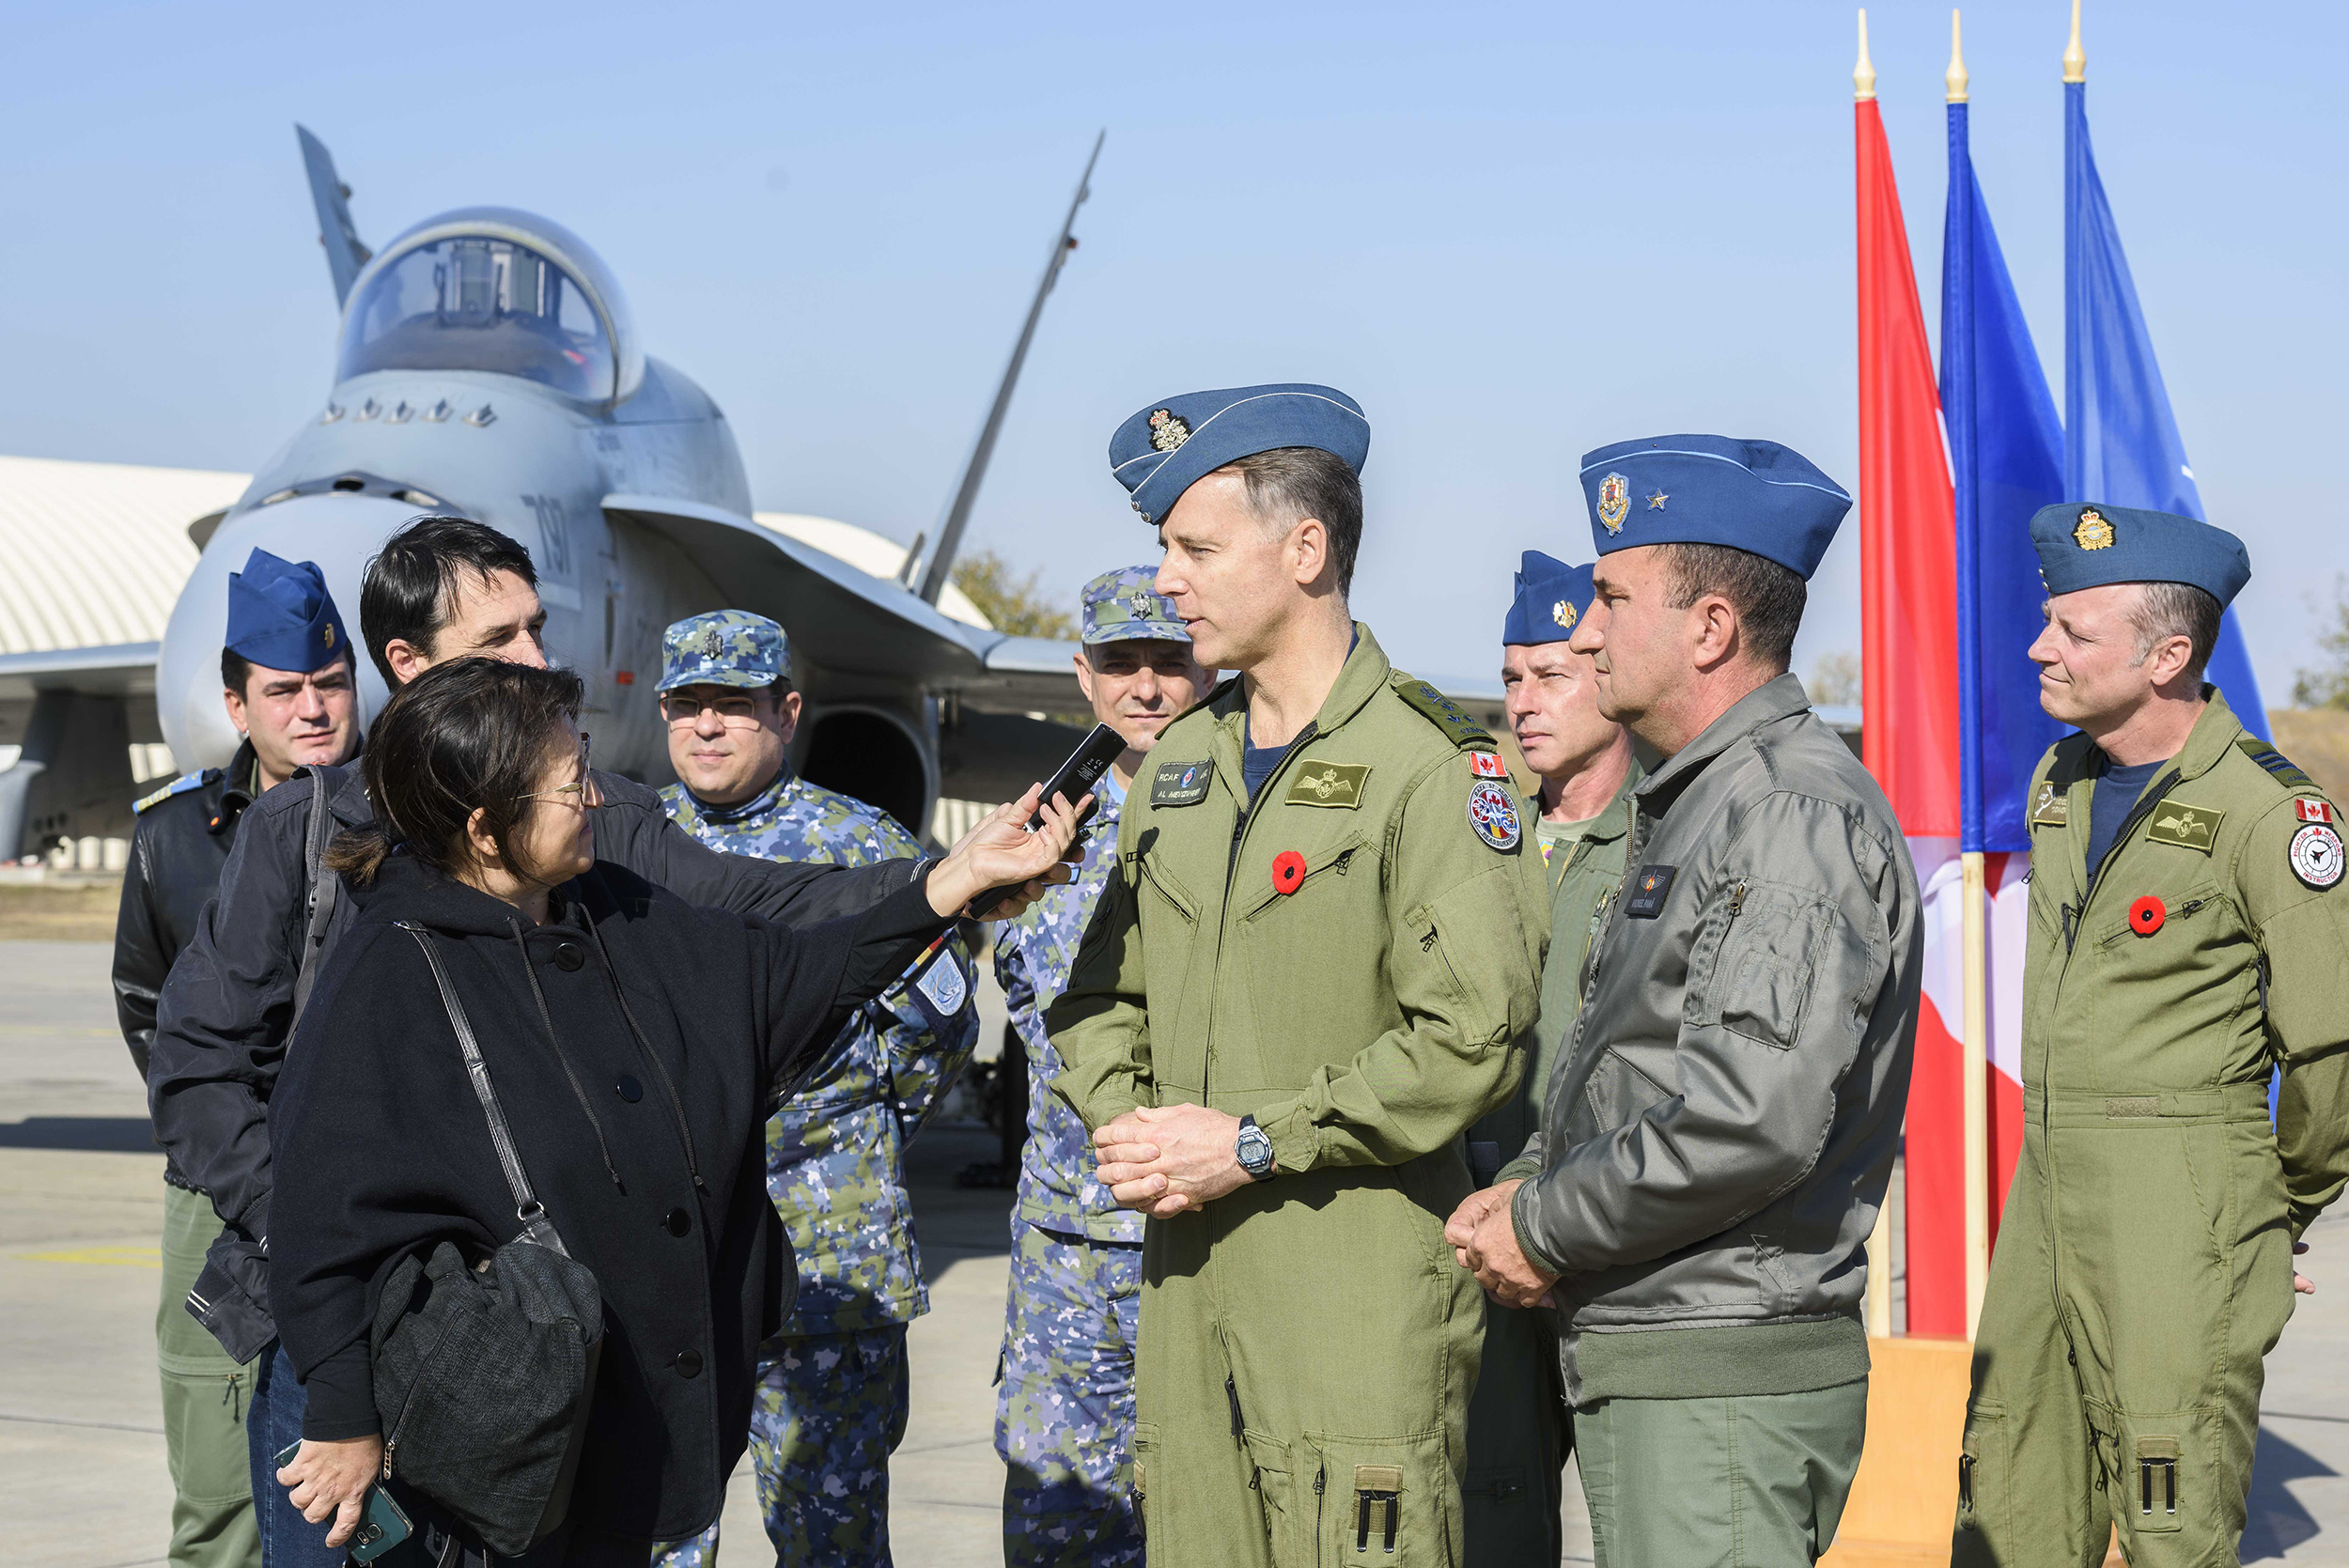 Lieutenant-General Al Meinzinger, commander of the Royal Canadian Air Force, responds to questions from a journalist at Mihail Kogalniceanu in Romania while visiting the fighter detachment deployed on Operation Reassurance on October 27, 2018. Approximately 135 personnel and five CF-188 Hornets are deployed on the operation, participating in NATO enhanced Air Policing to safeguard the integrity of NATO airspace. The RCAF personnel are mainly from 425 Tactical Fighter Squadron, supported by personnel primarily from 2 Air Expeditionary Wing and 3 Wing. All the units are from Bagotville, Quebec. PHOTO: Corporal Dominic Duchesne-Beaulieu, RP20-2018-0044-013